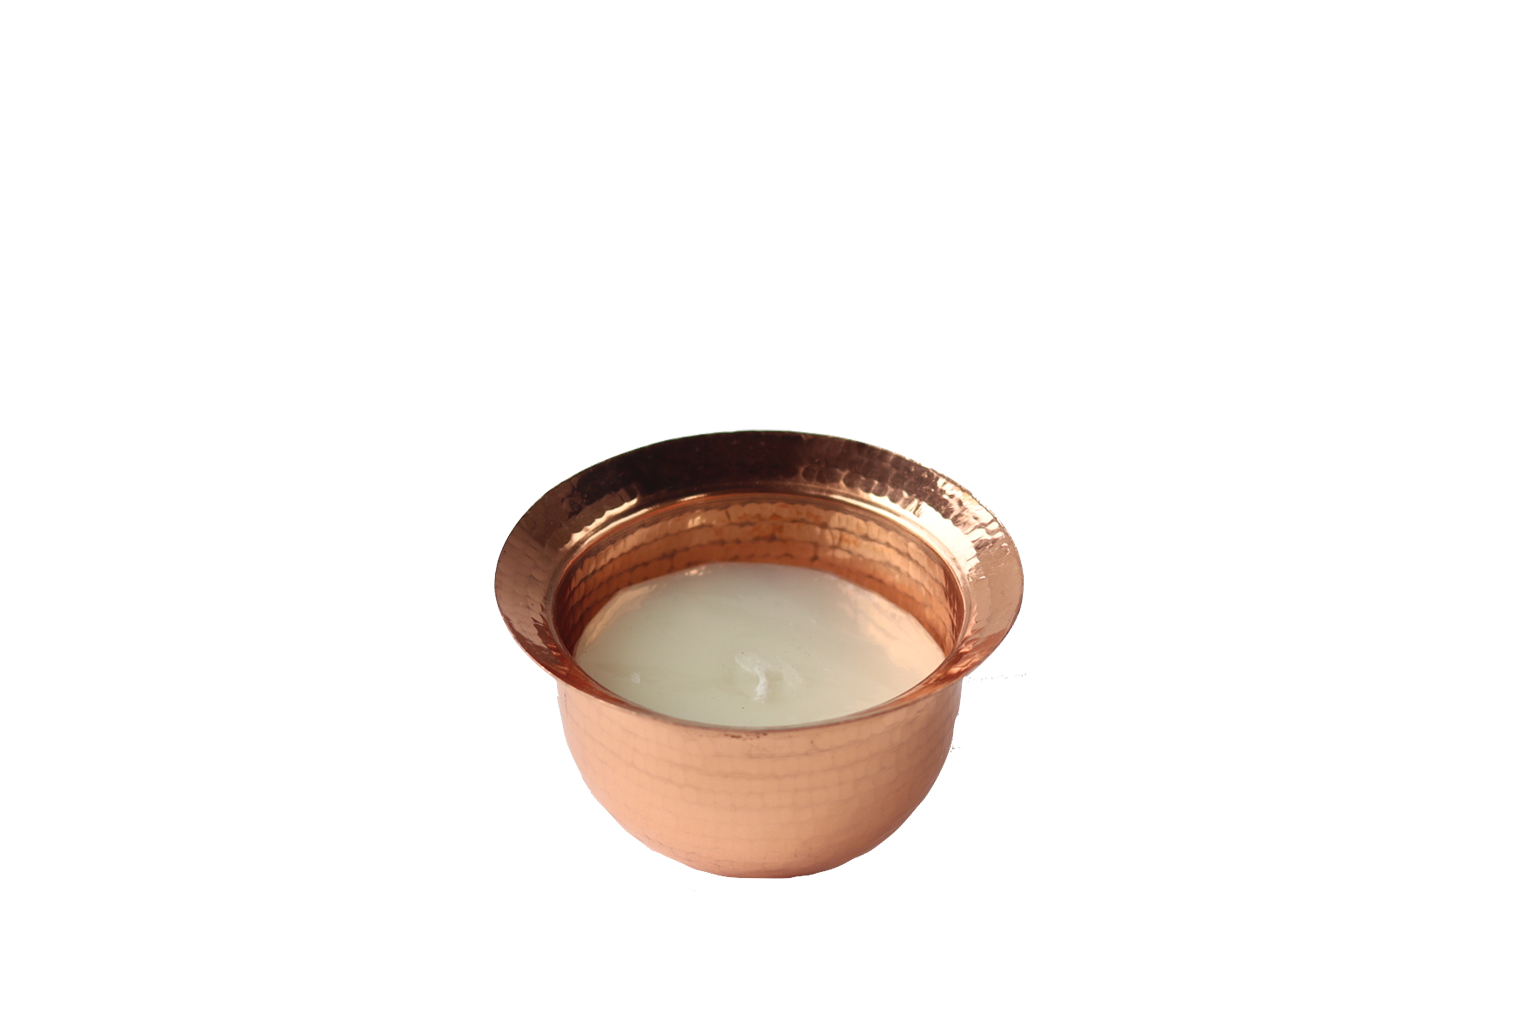 Copper Earthlore Candle - S$35